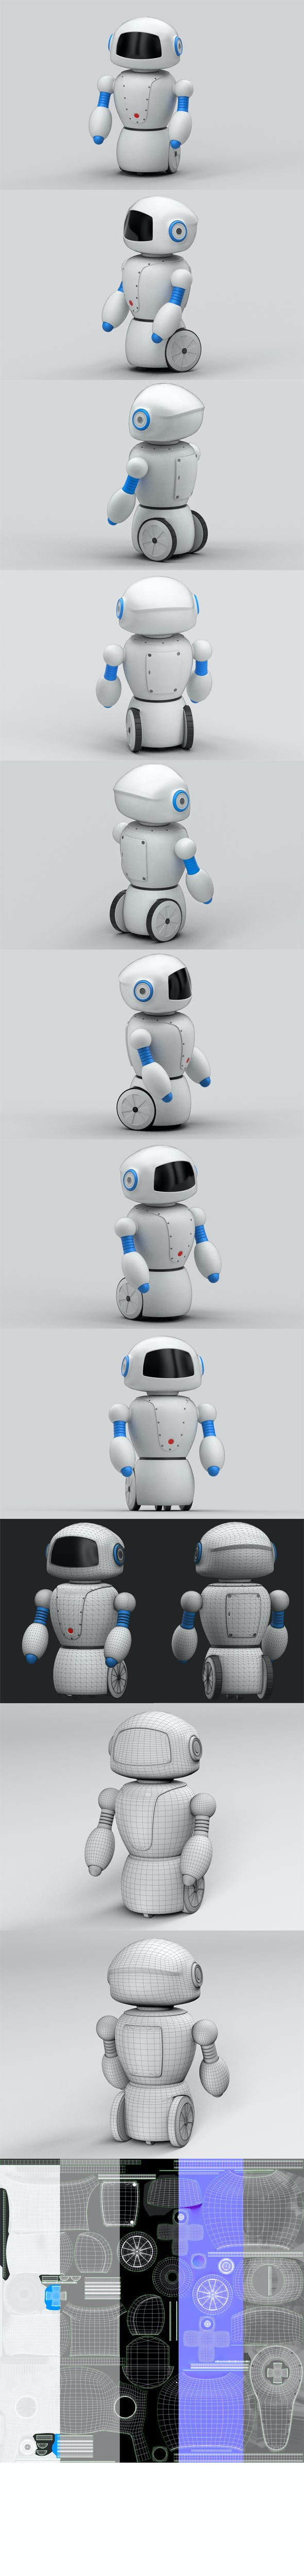 Toy robot - 3DOcean Item for Sale